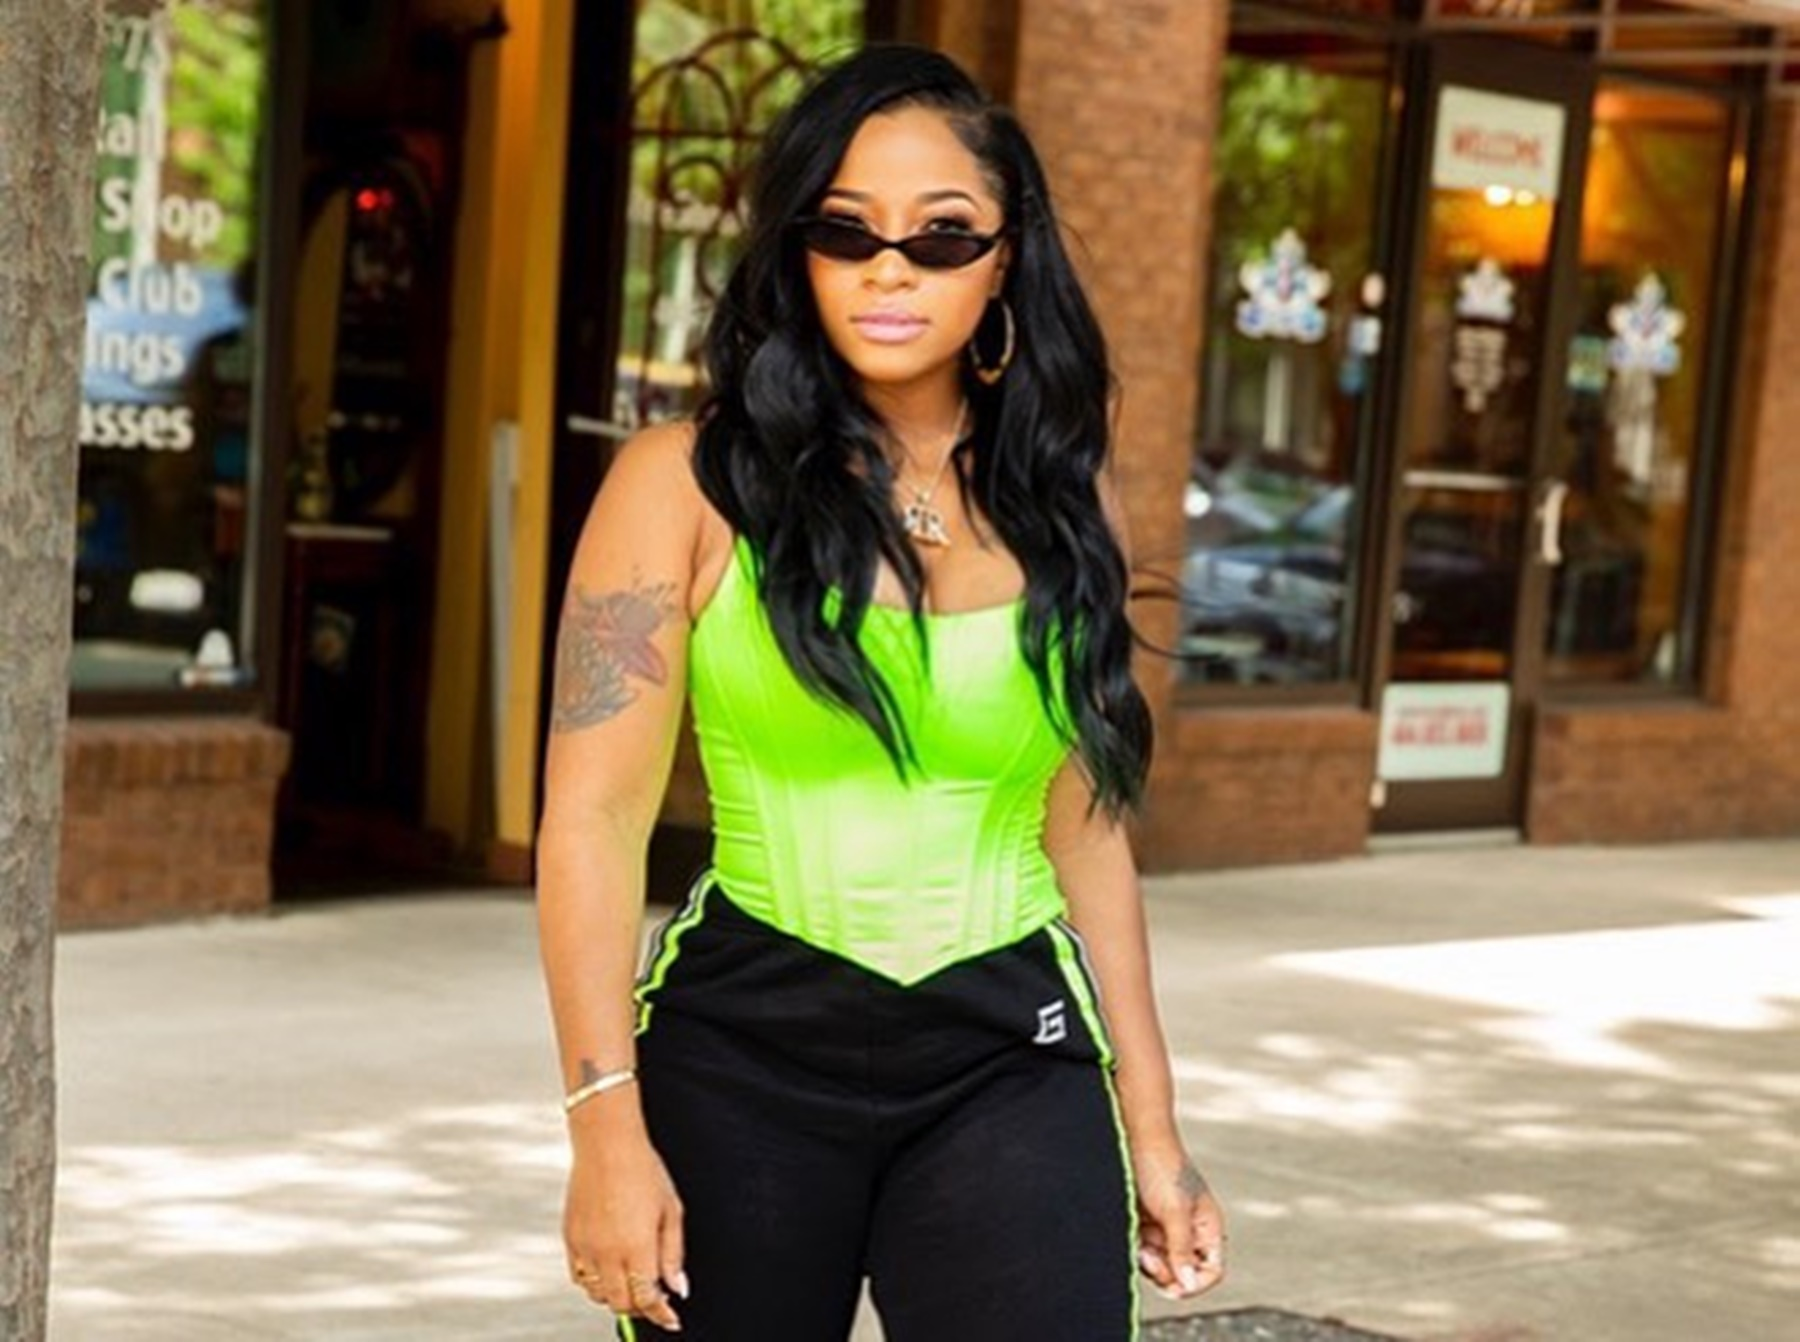 toya-wright-has-fans-going-wild-in-sheer-illusion-dress-photo-lil-waynes-daughter-reginae-carter-approves-of-her-mother-flaunting-her-curves